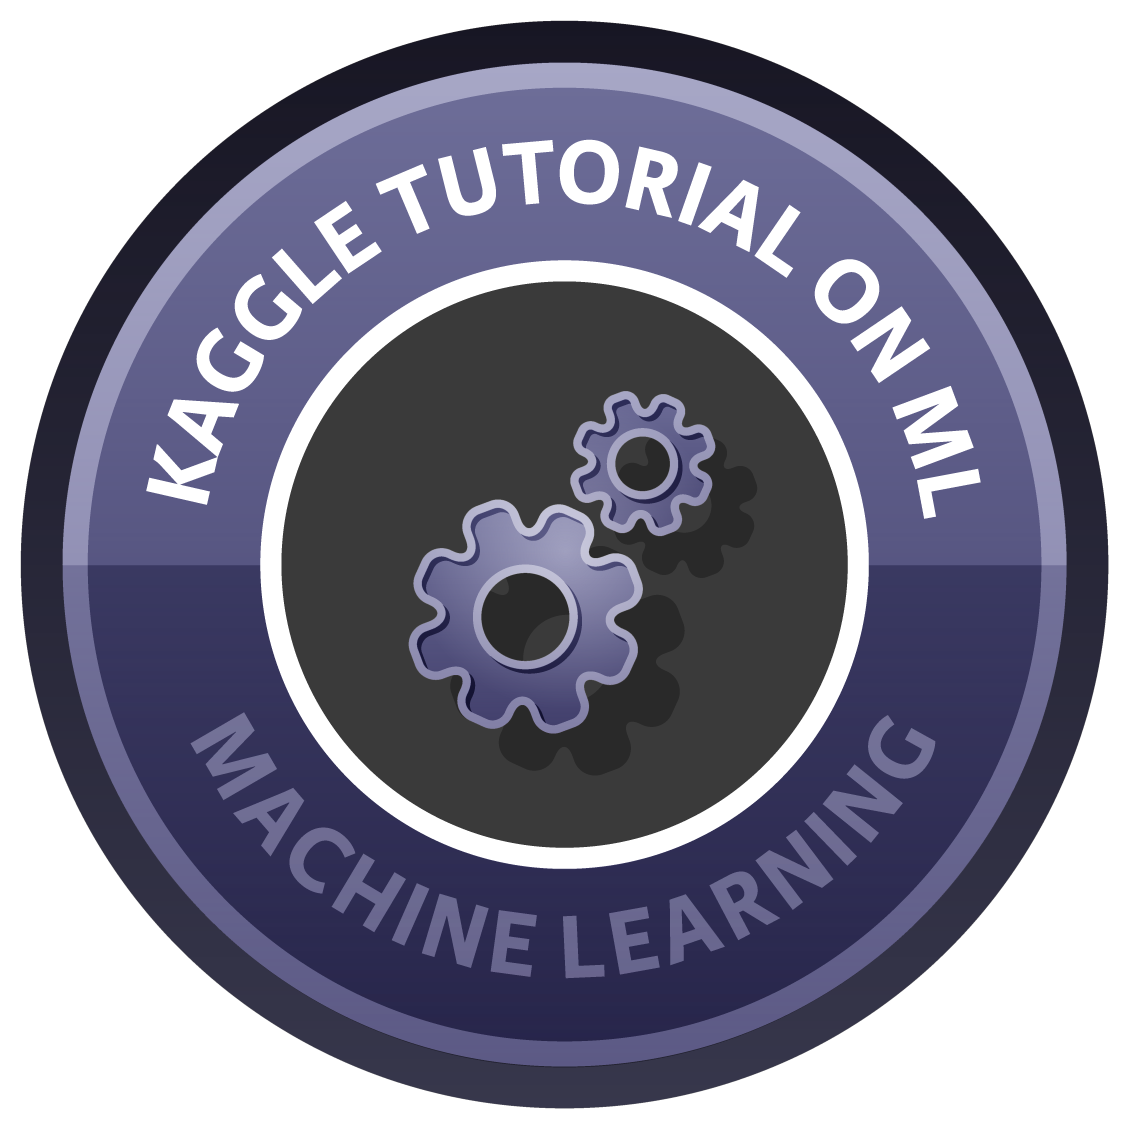 Kaggle R Tutorial on Machine Learning (practice) - DataCamp